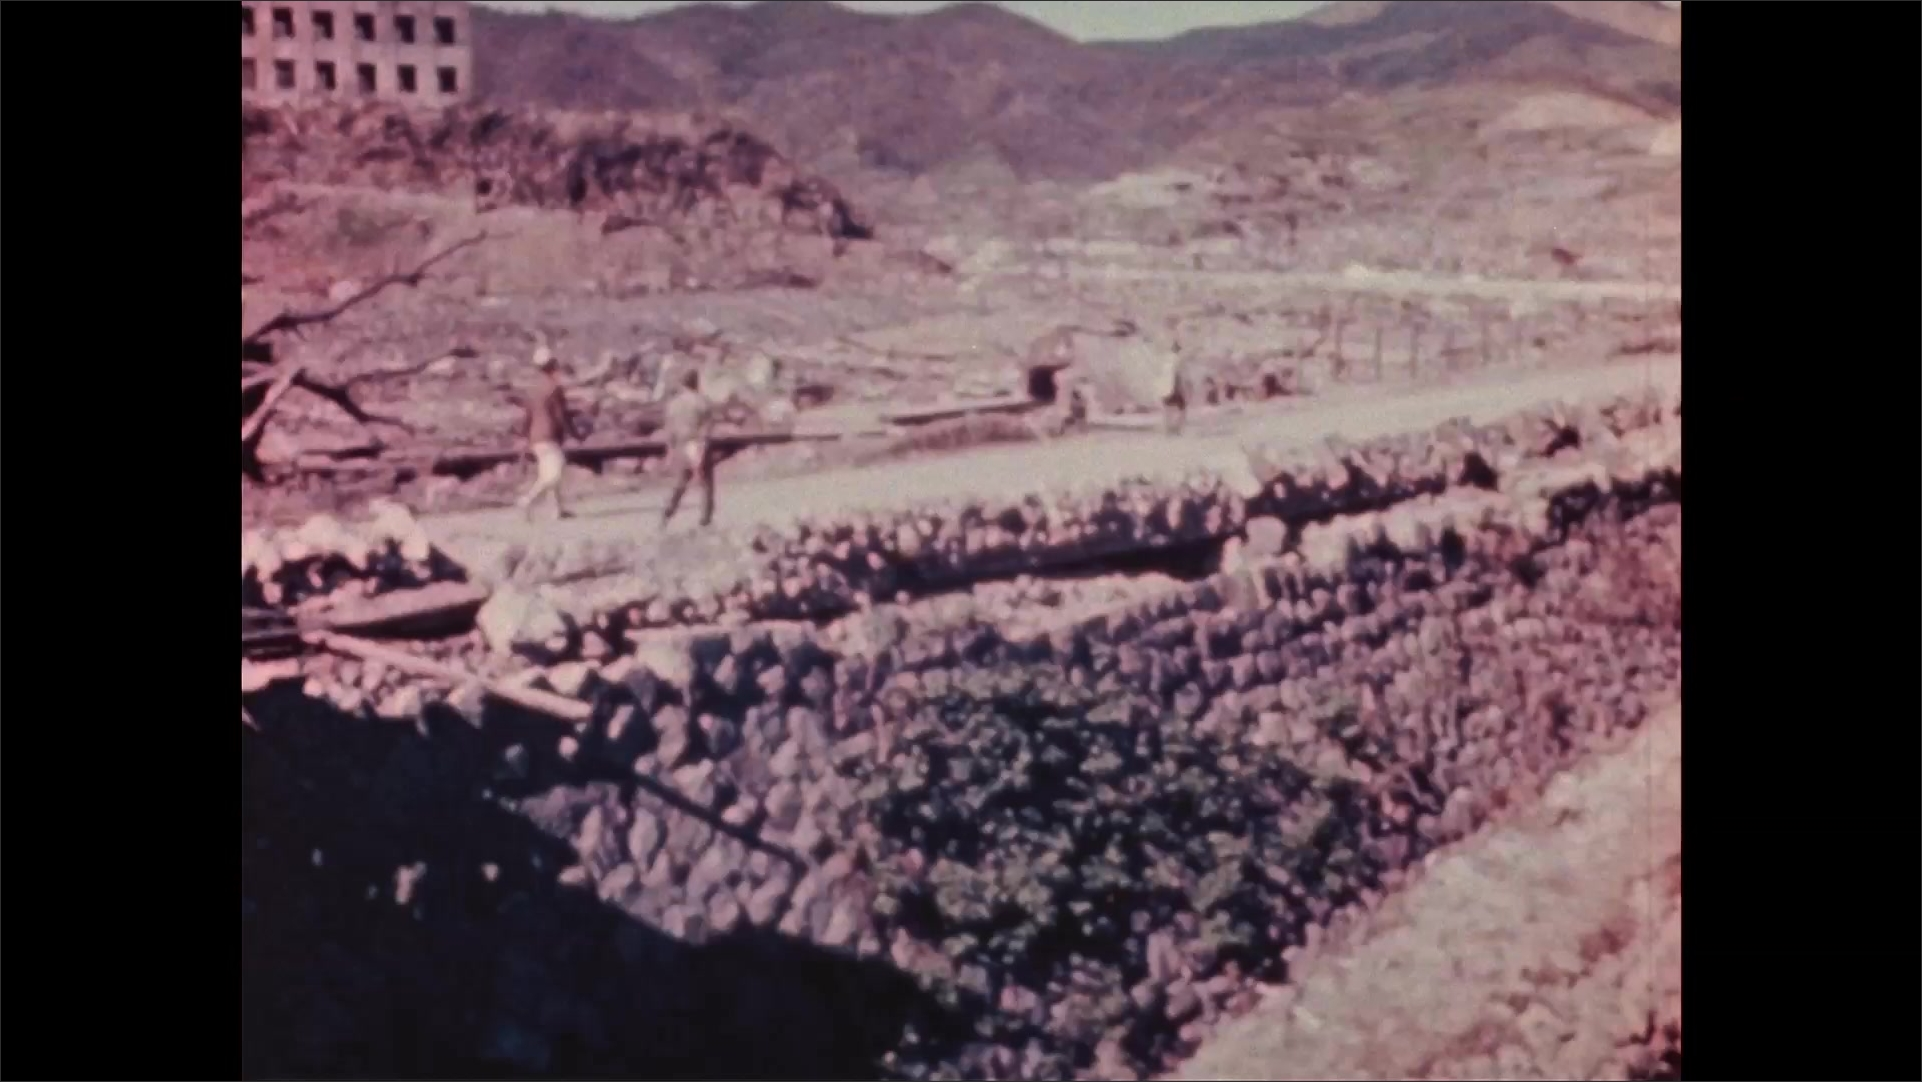 1940s Nagasaki: Mountains, rubble, dirt, partially collapsed building, windows blown out. People walk down road. Horse pulls cart.